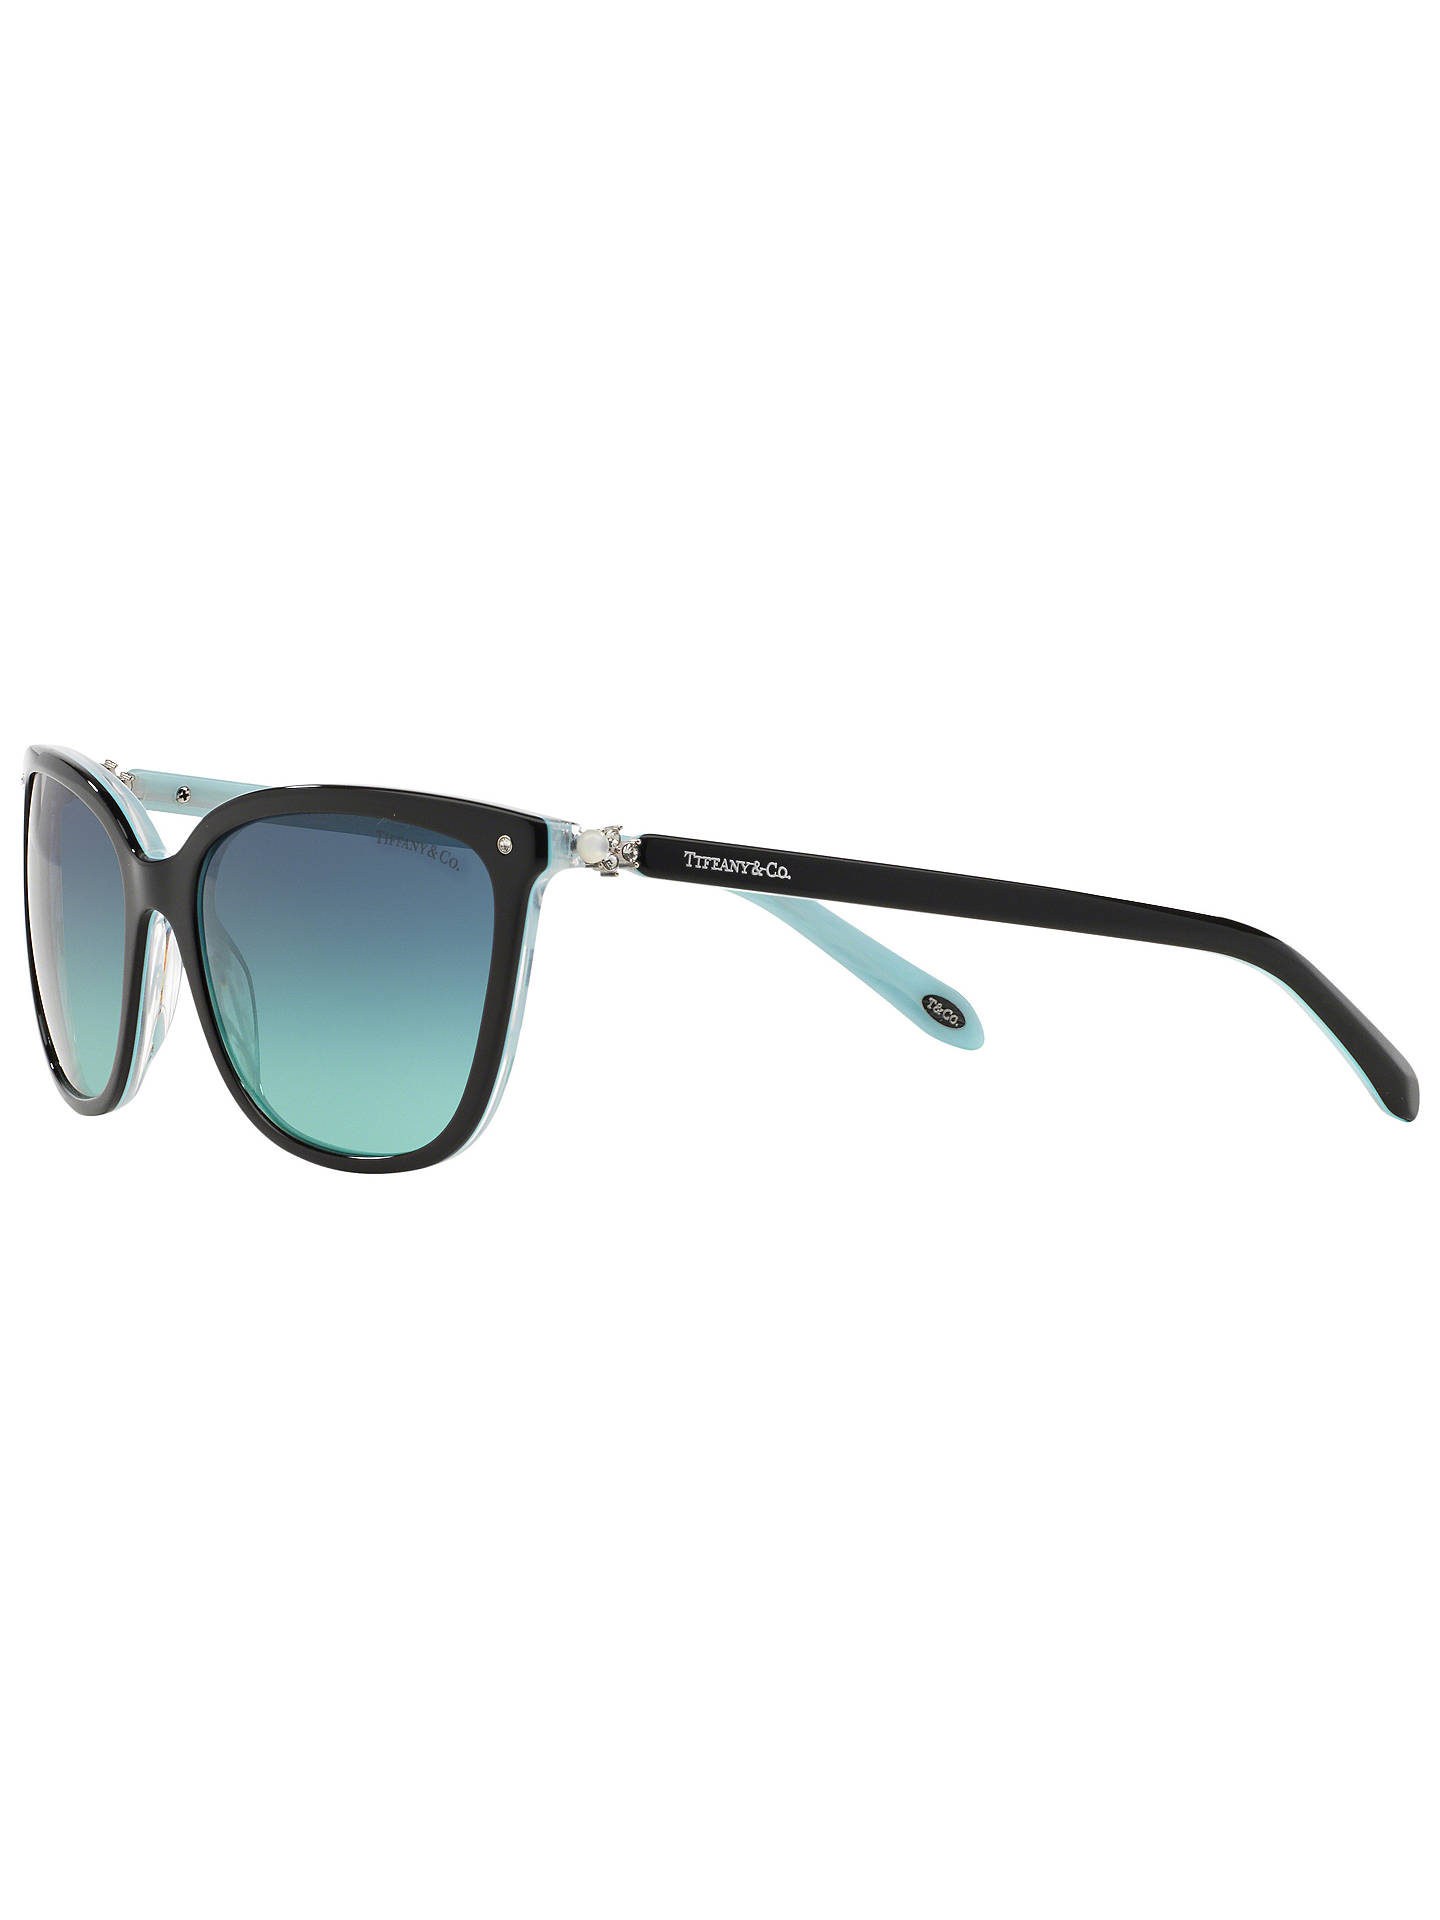 9976a4782bd1 Tiffany   Co TF4105HB Square Sunglasses at John Lewis   Partners